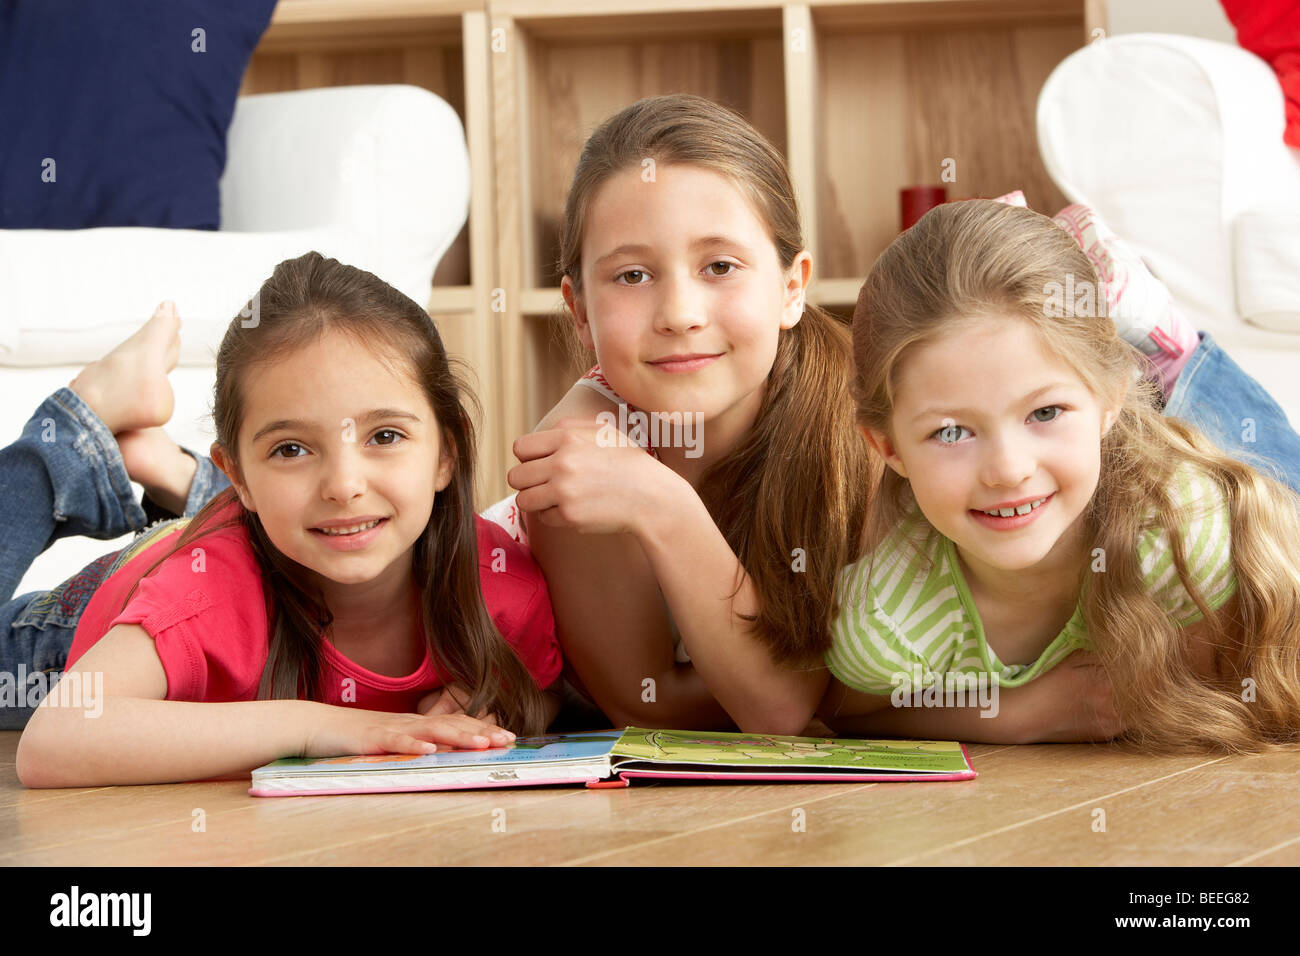 Three Young Girls Reading Book at Home - Stock Image